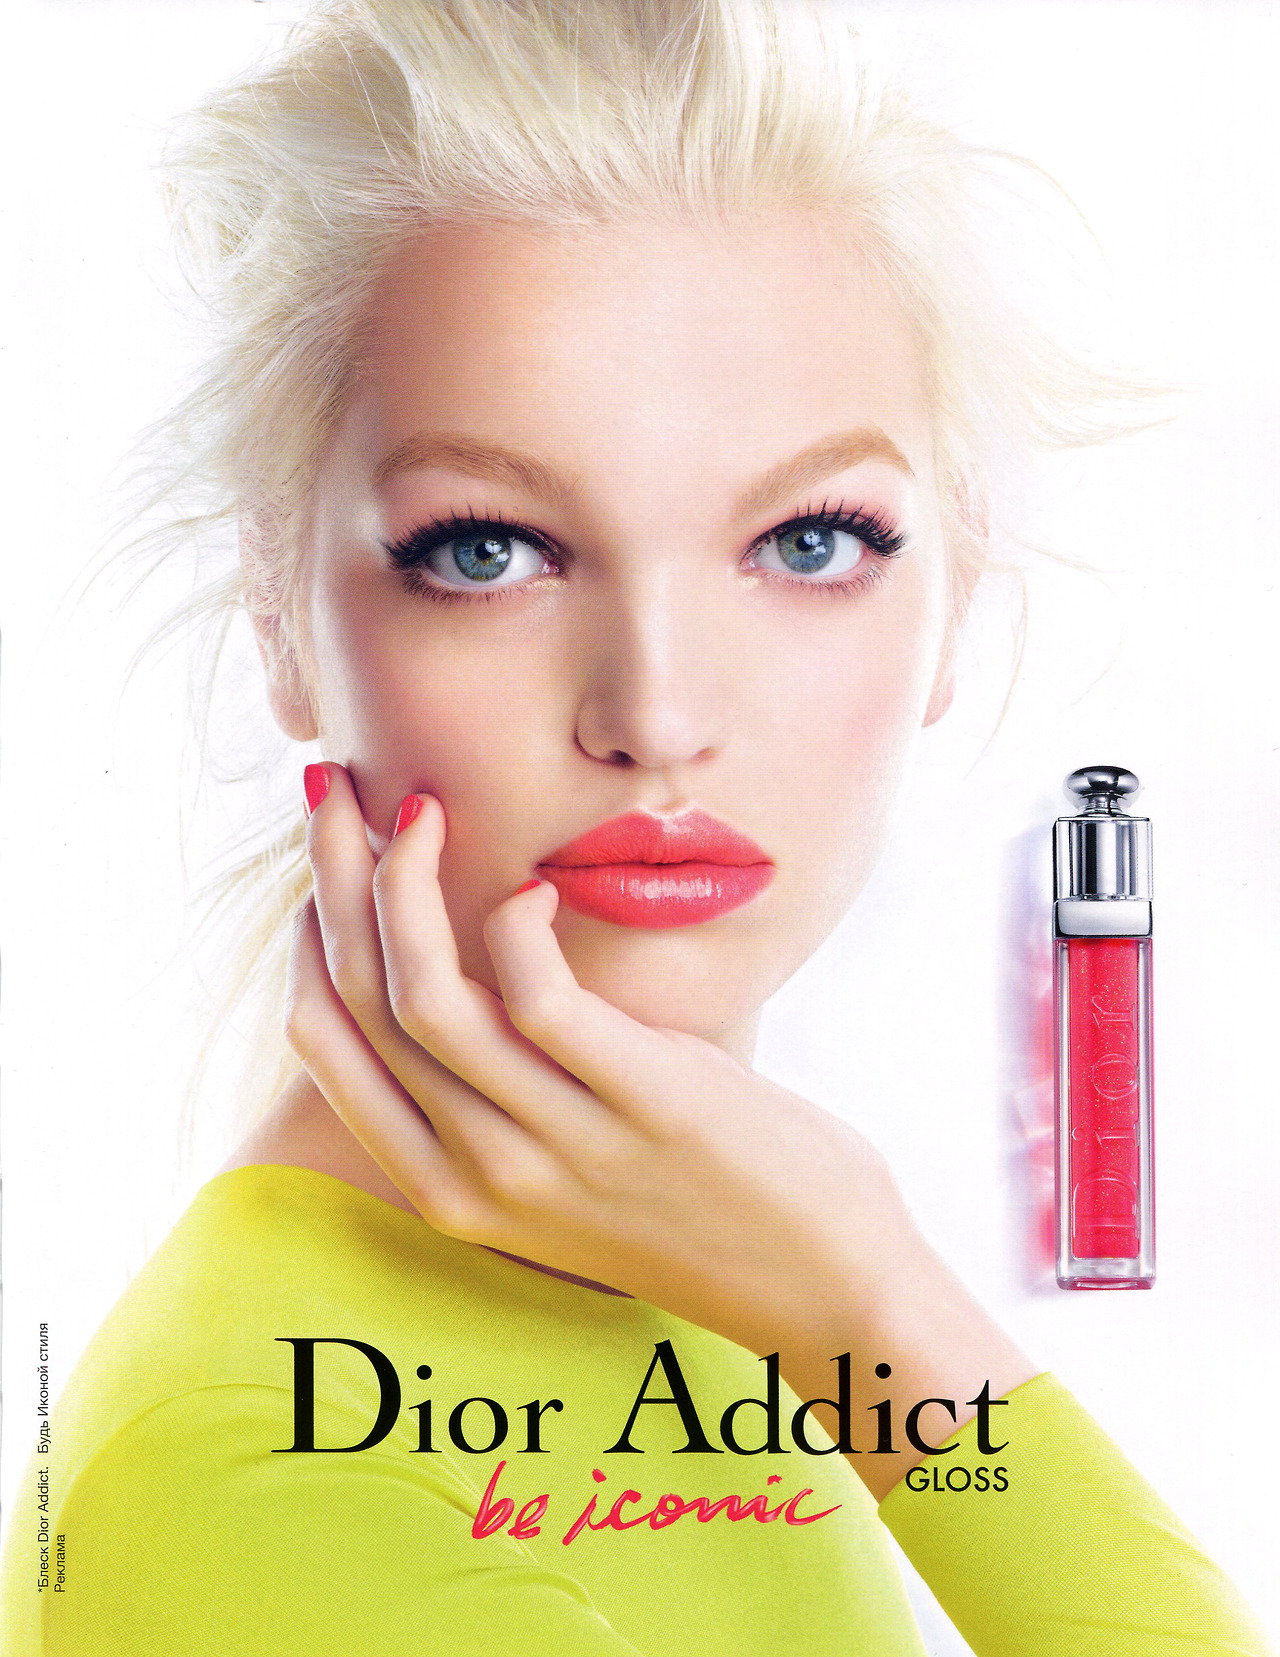 2015-02-1-Dior addict be iconic gloss 4